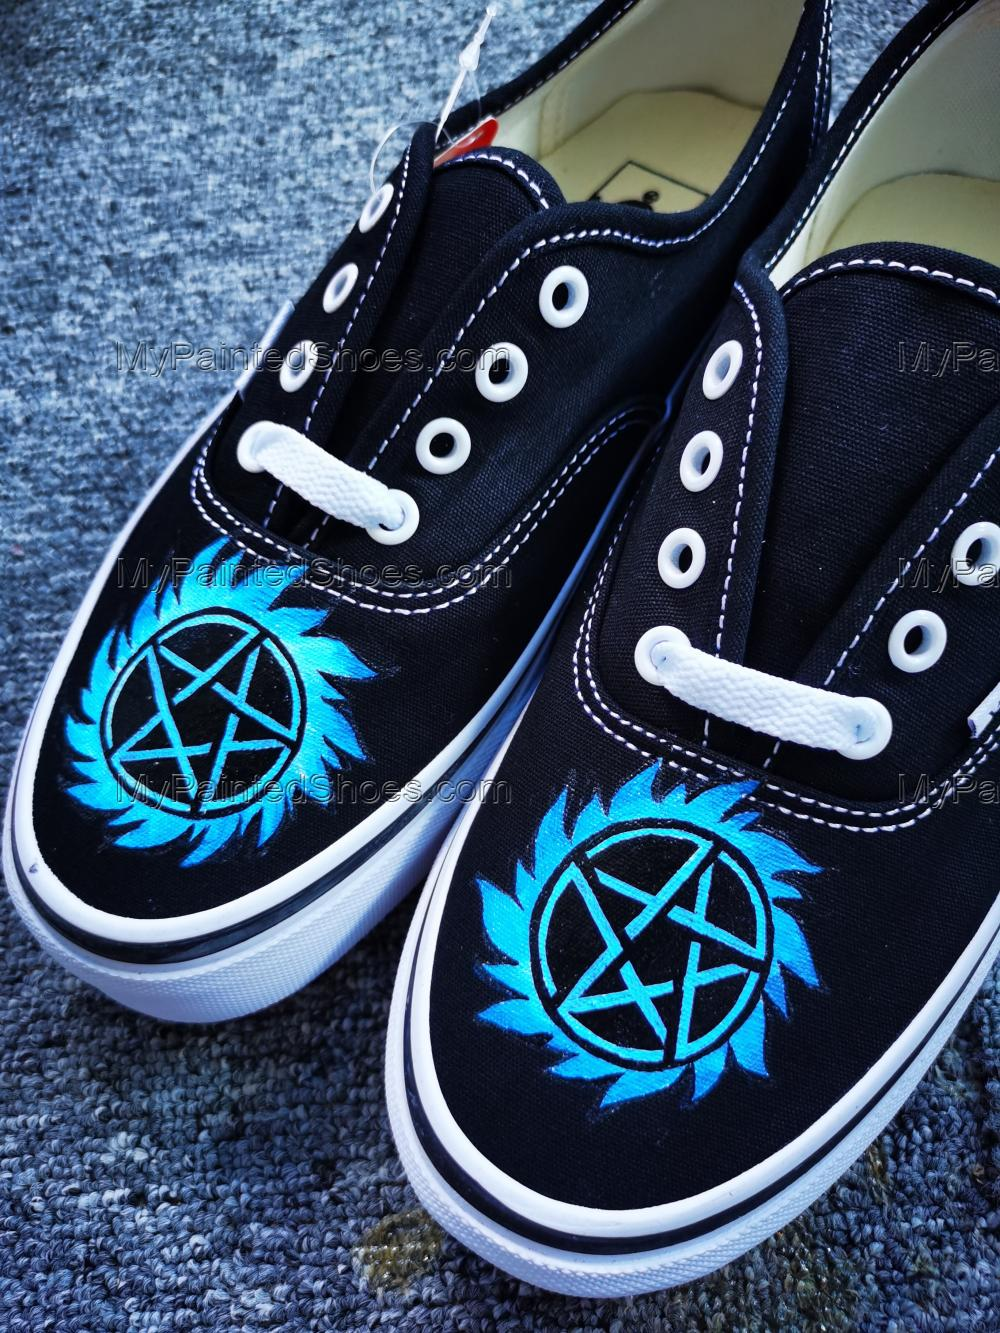 2021 Supernatural Shoes Custom Authentic Sneakers-1